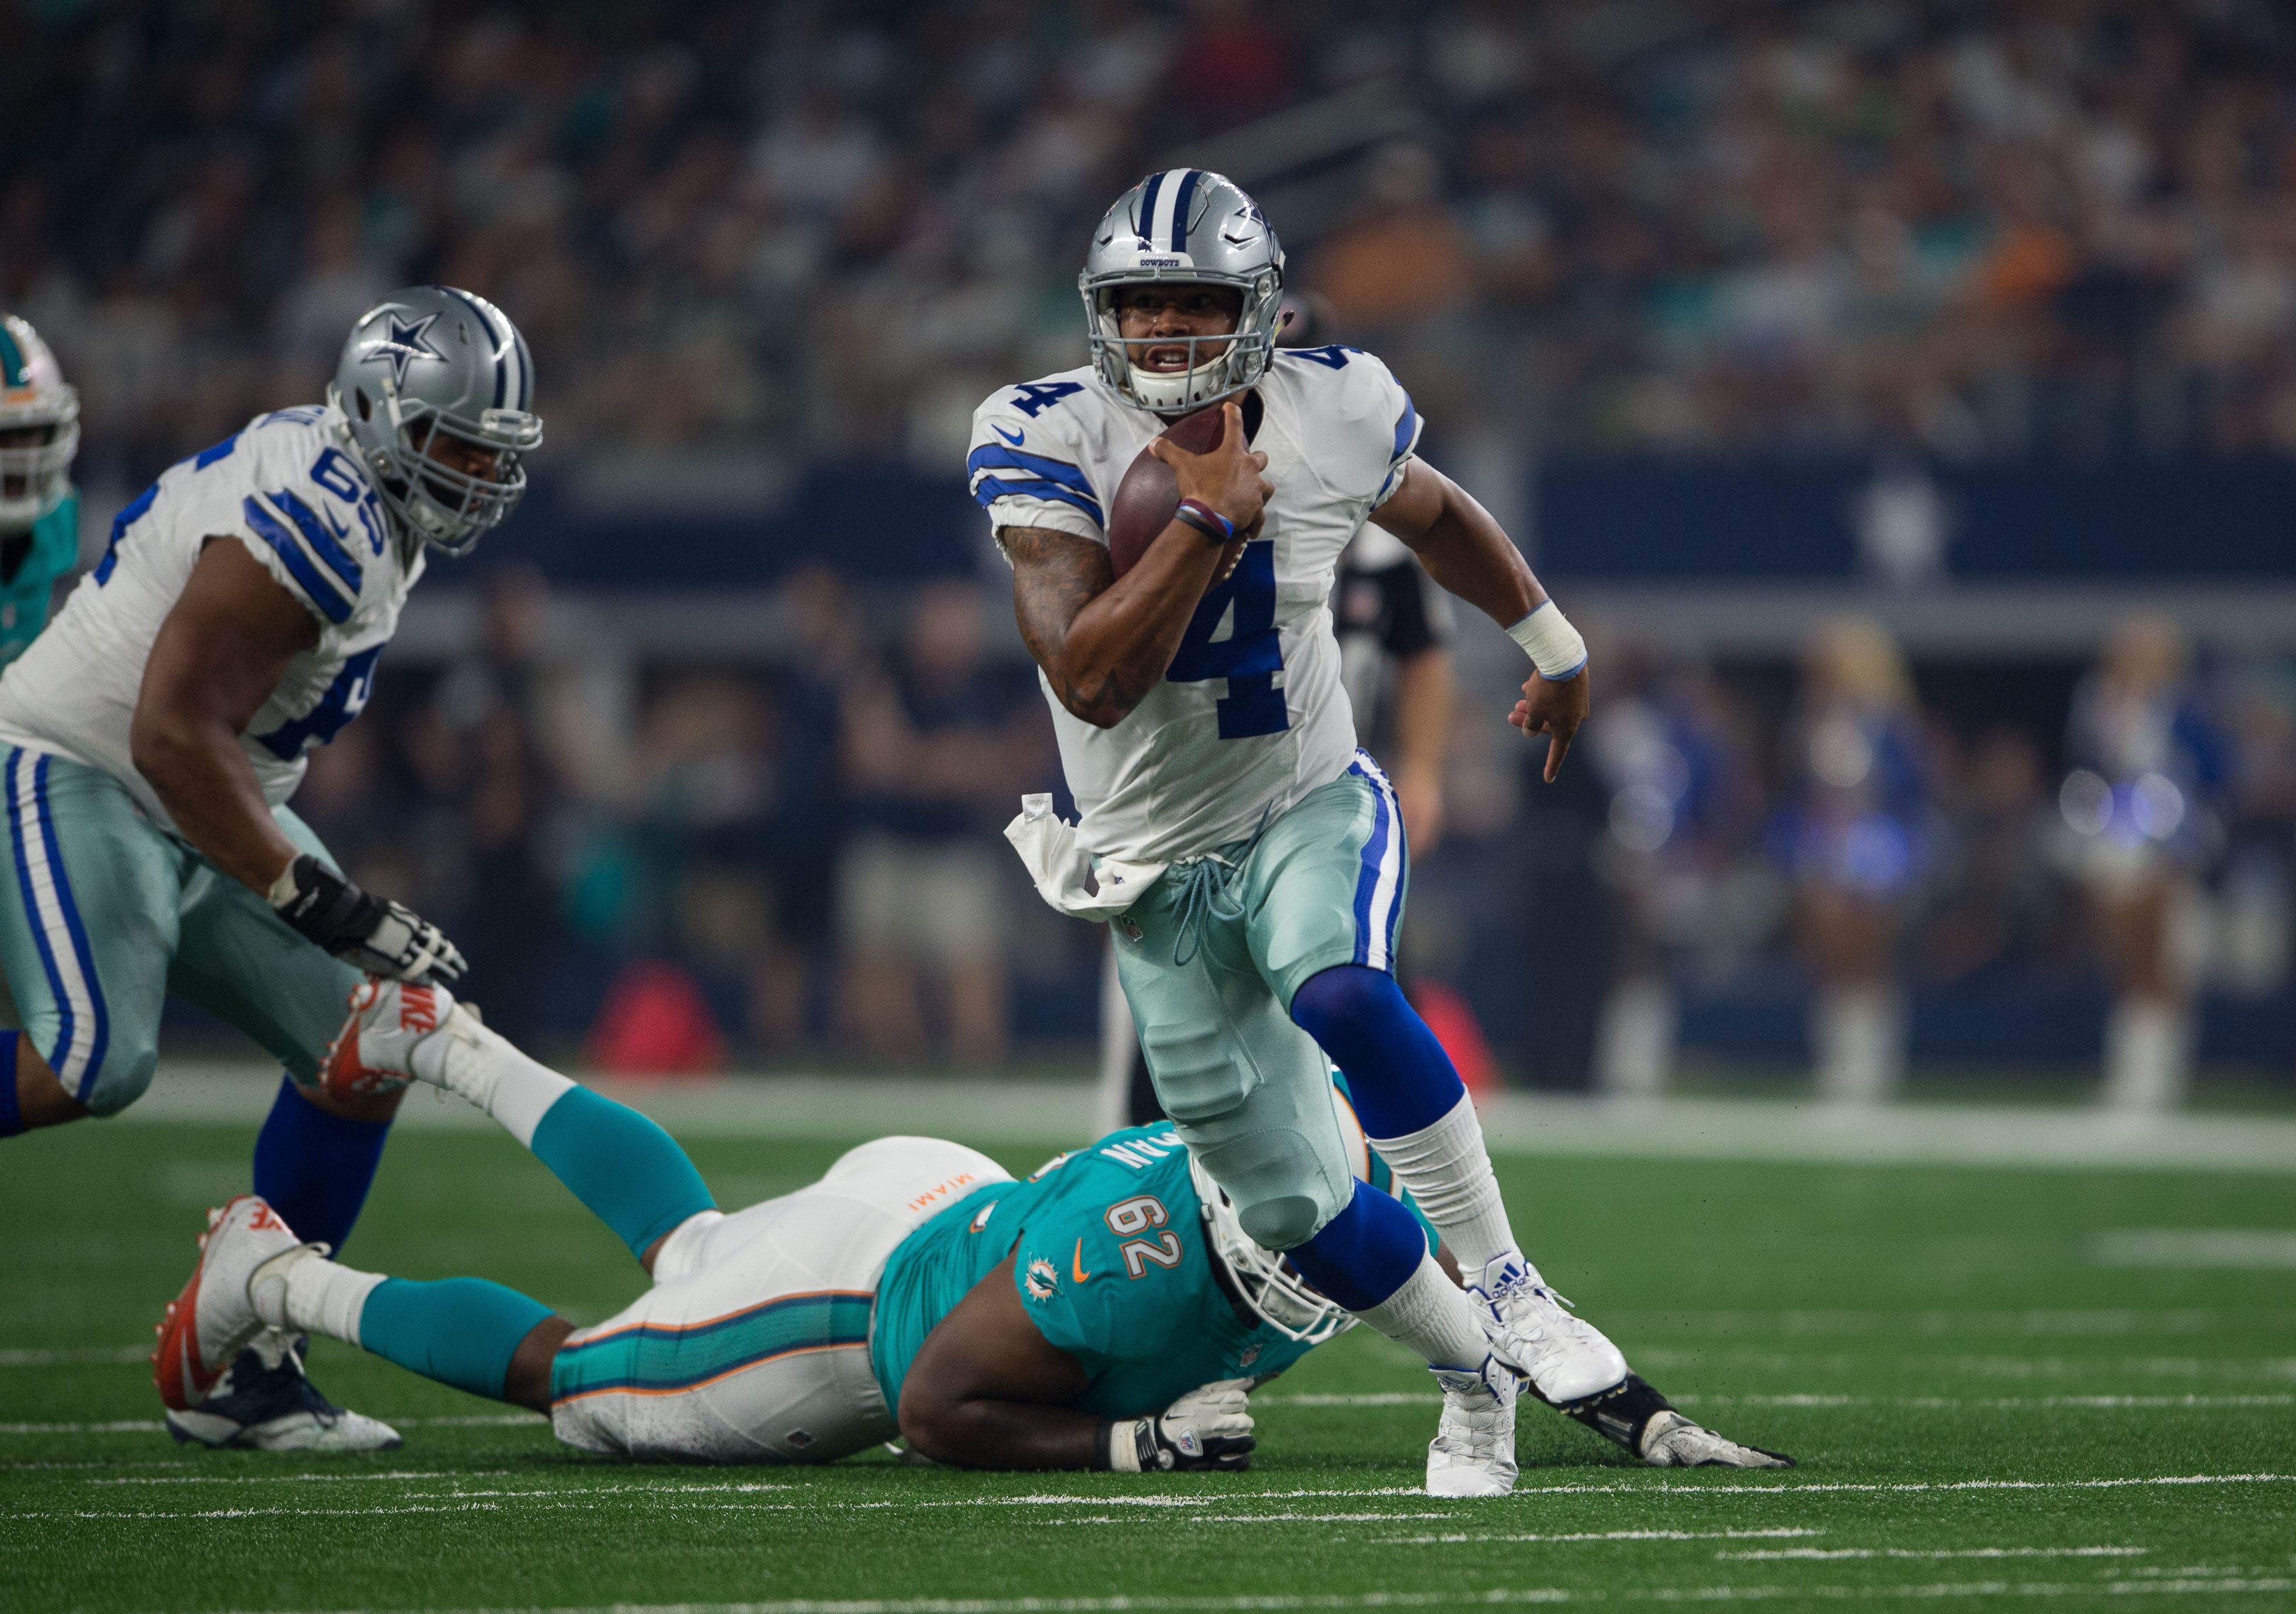 #DALvsMIA: Betting Preview, Trends, And Prediction